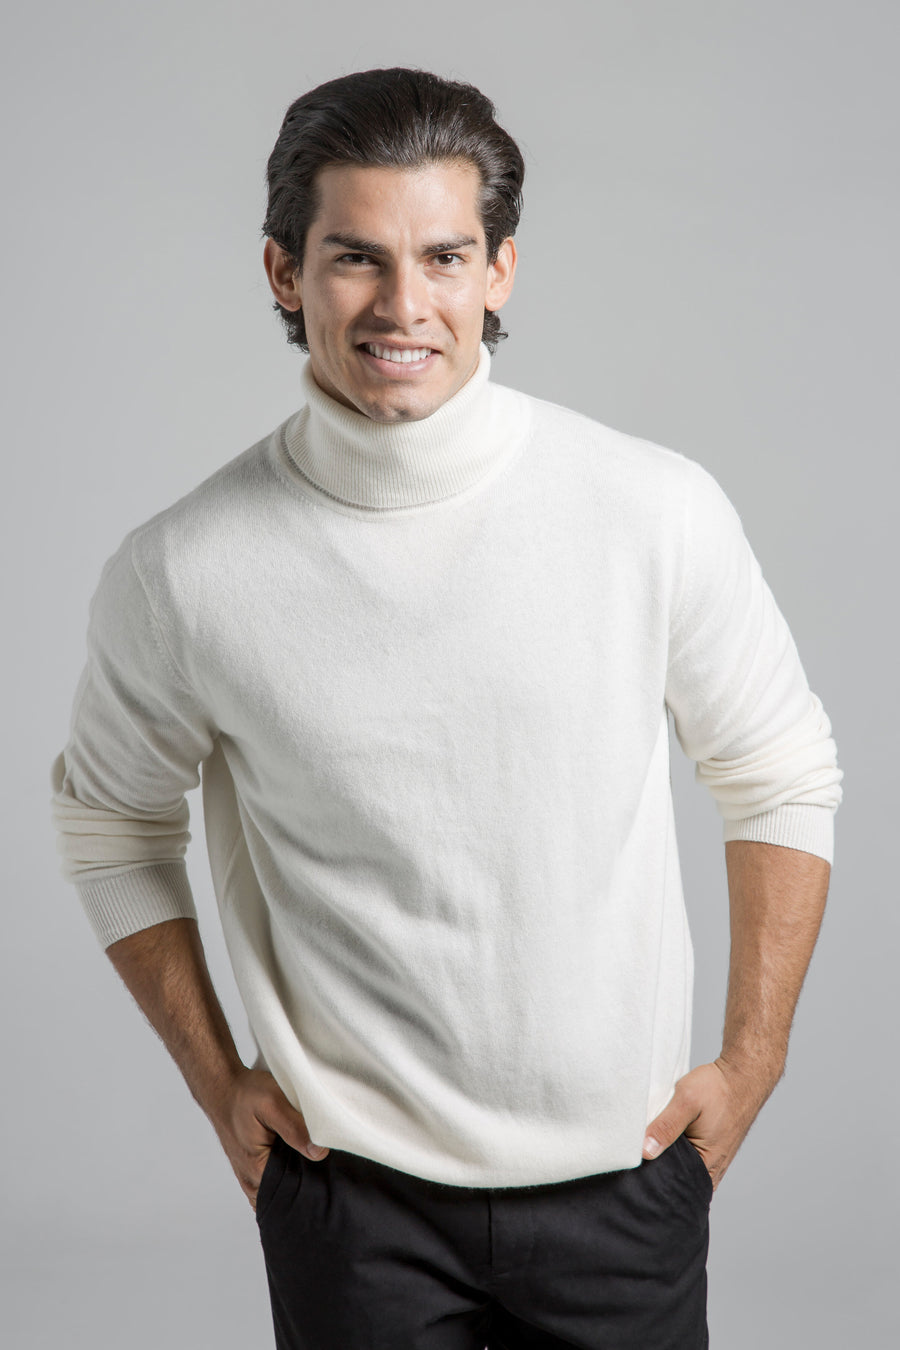 pine cashmere mens classic 100% pure organic cashmere turtleneck sweater in white